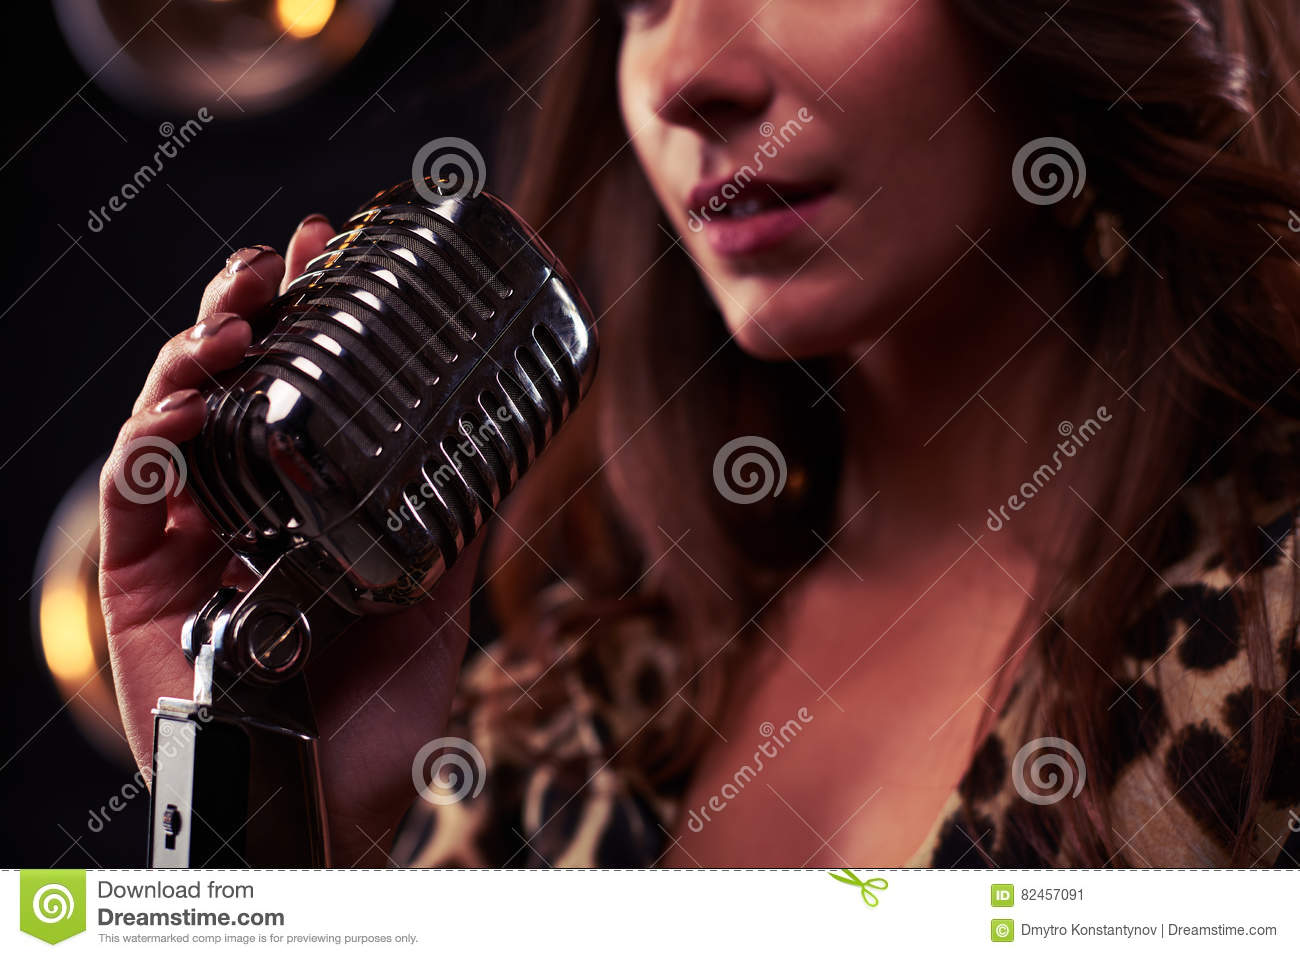 Rack focus of a girl holding a silver vintage microphone